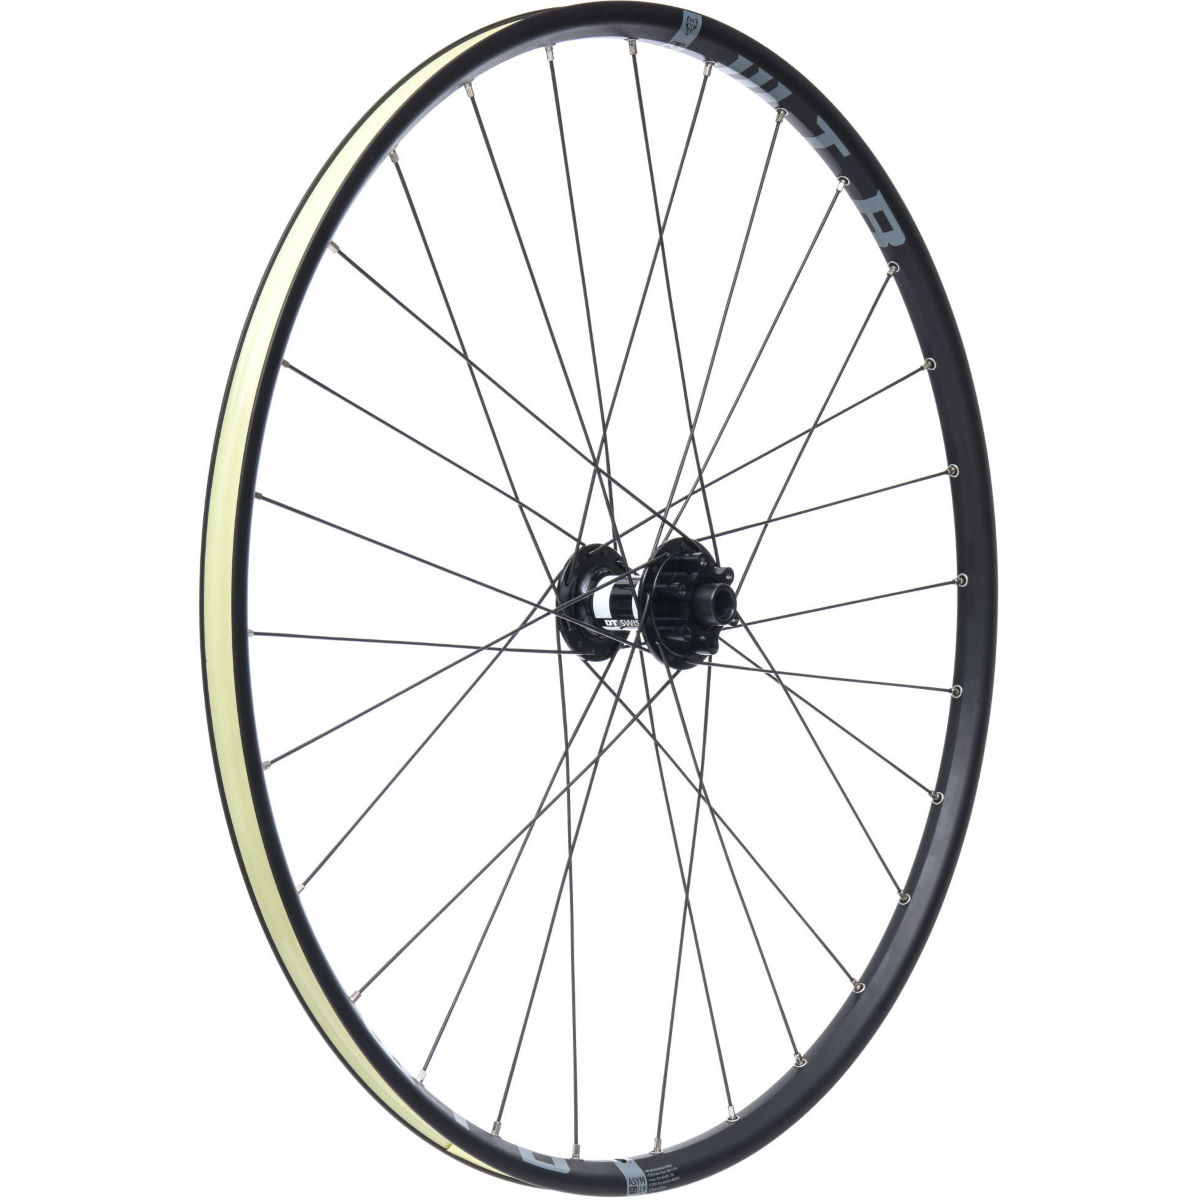 DT Swiss DT Swiss DT350 on WTB Asym i19 XTXC Front Wheel   Front Wheels